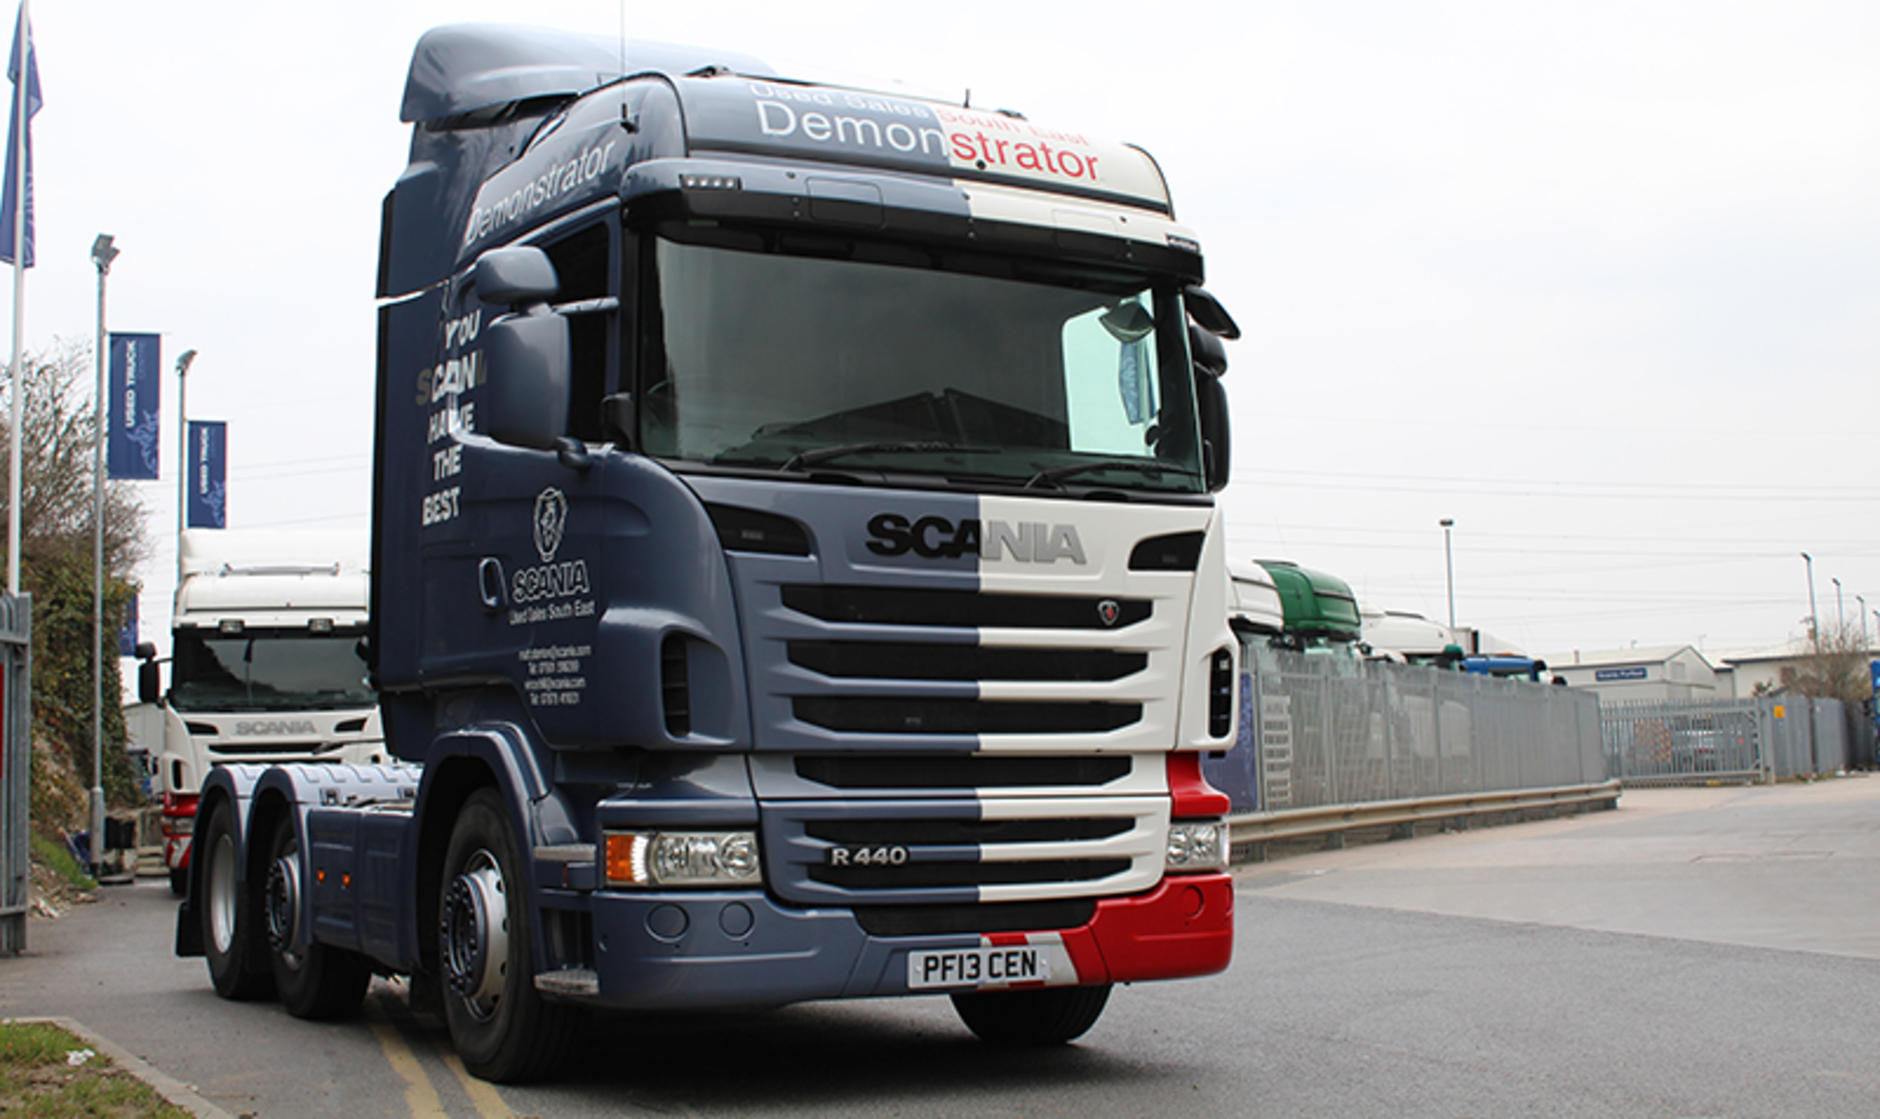 Used r450 demonstrator truck wins customers for scania for Newspaper wallpaper for sale